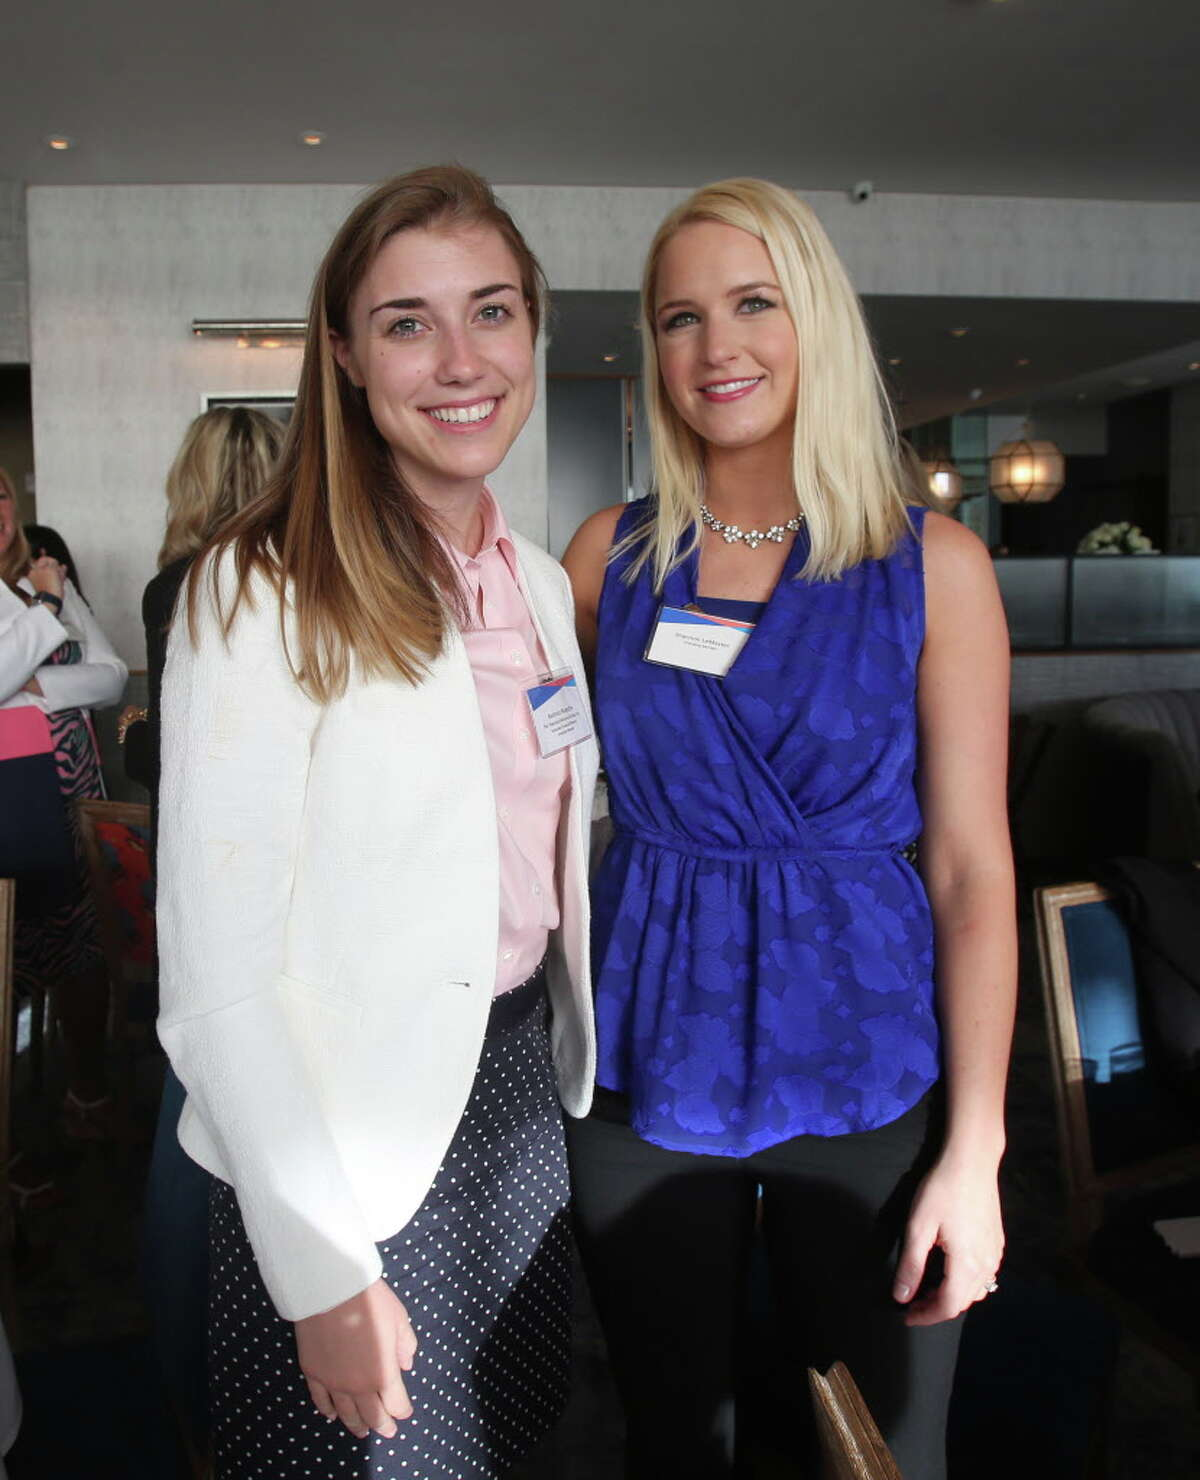 Beatrice Waesche and Shannon LeMaster at Ellevate Houston's executive breakfast.